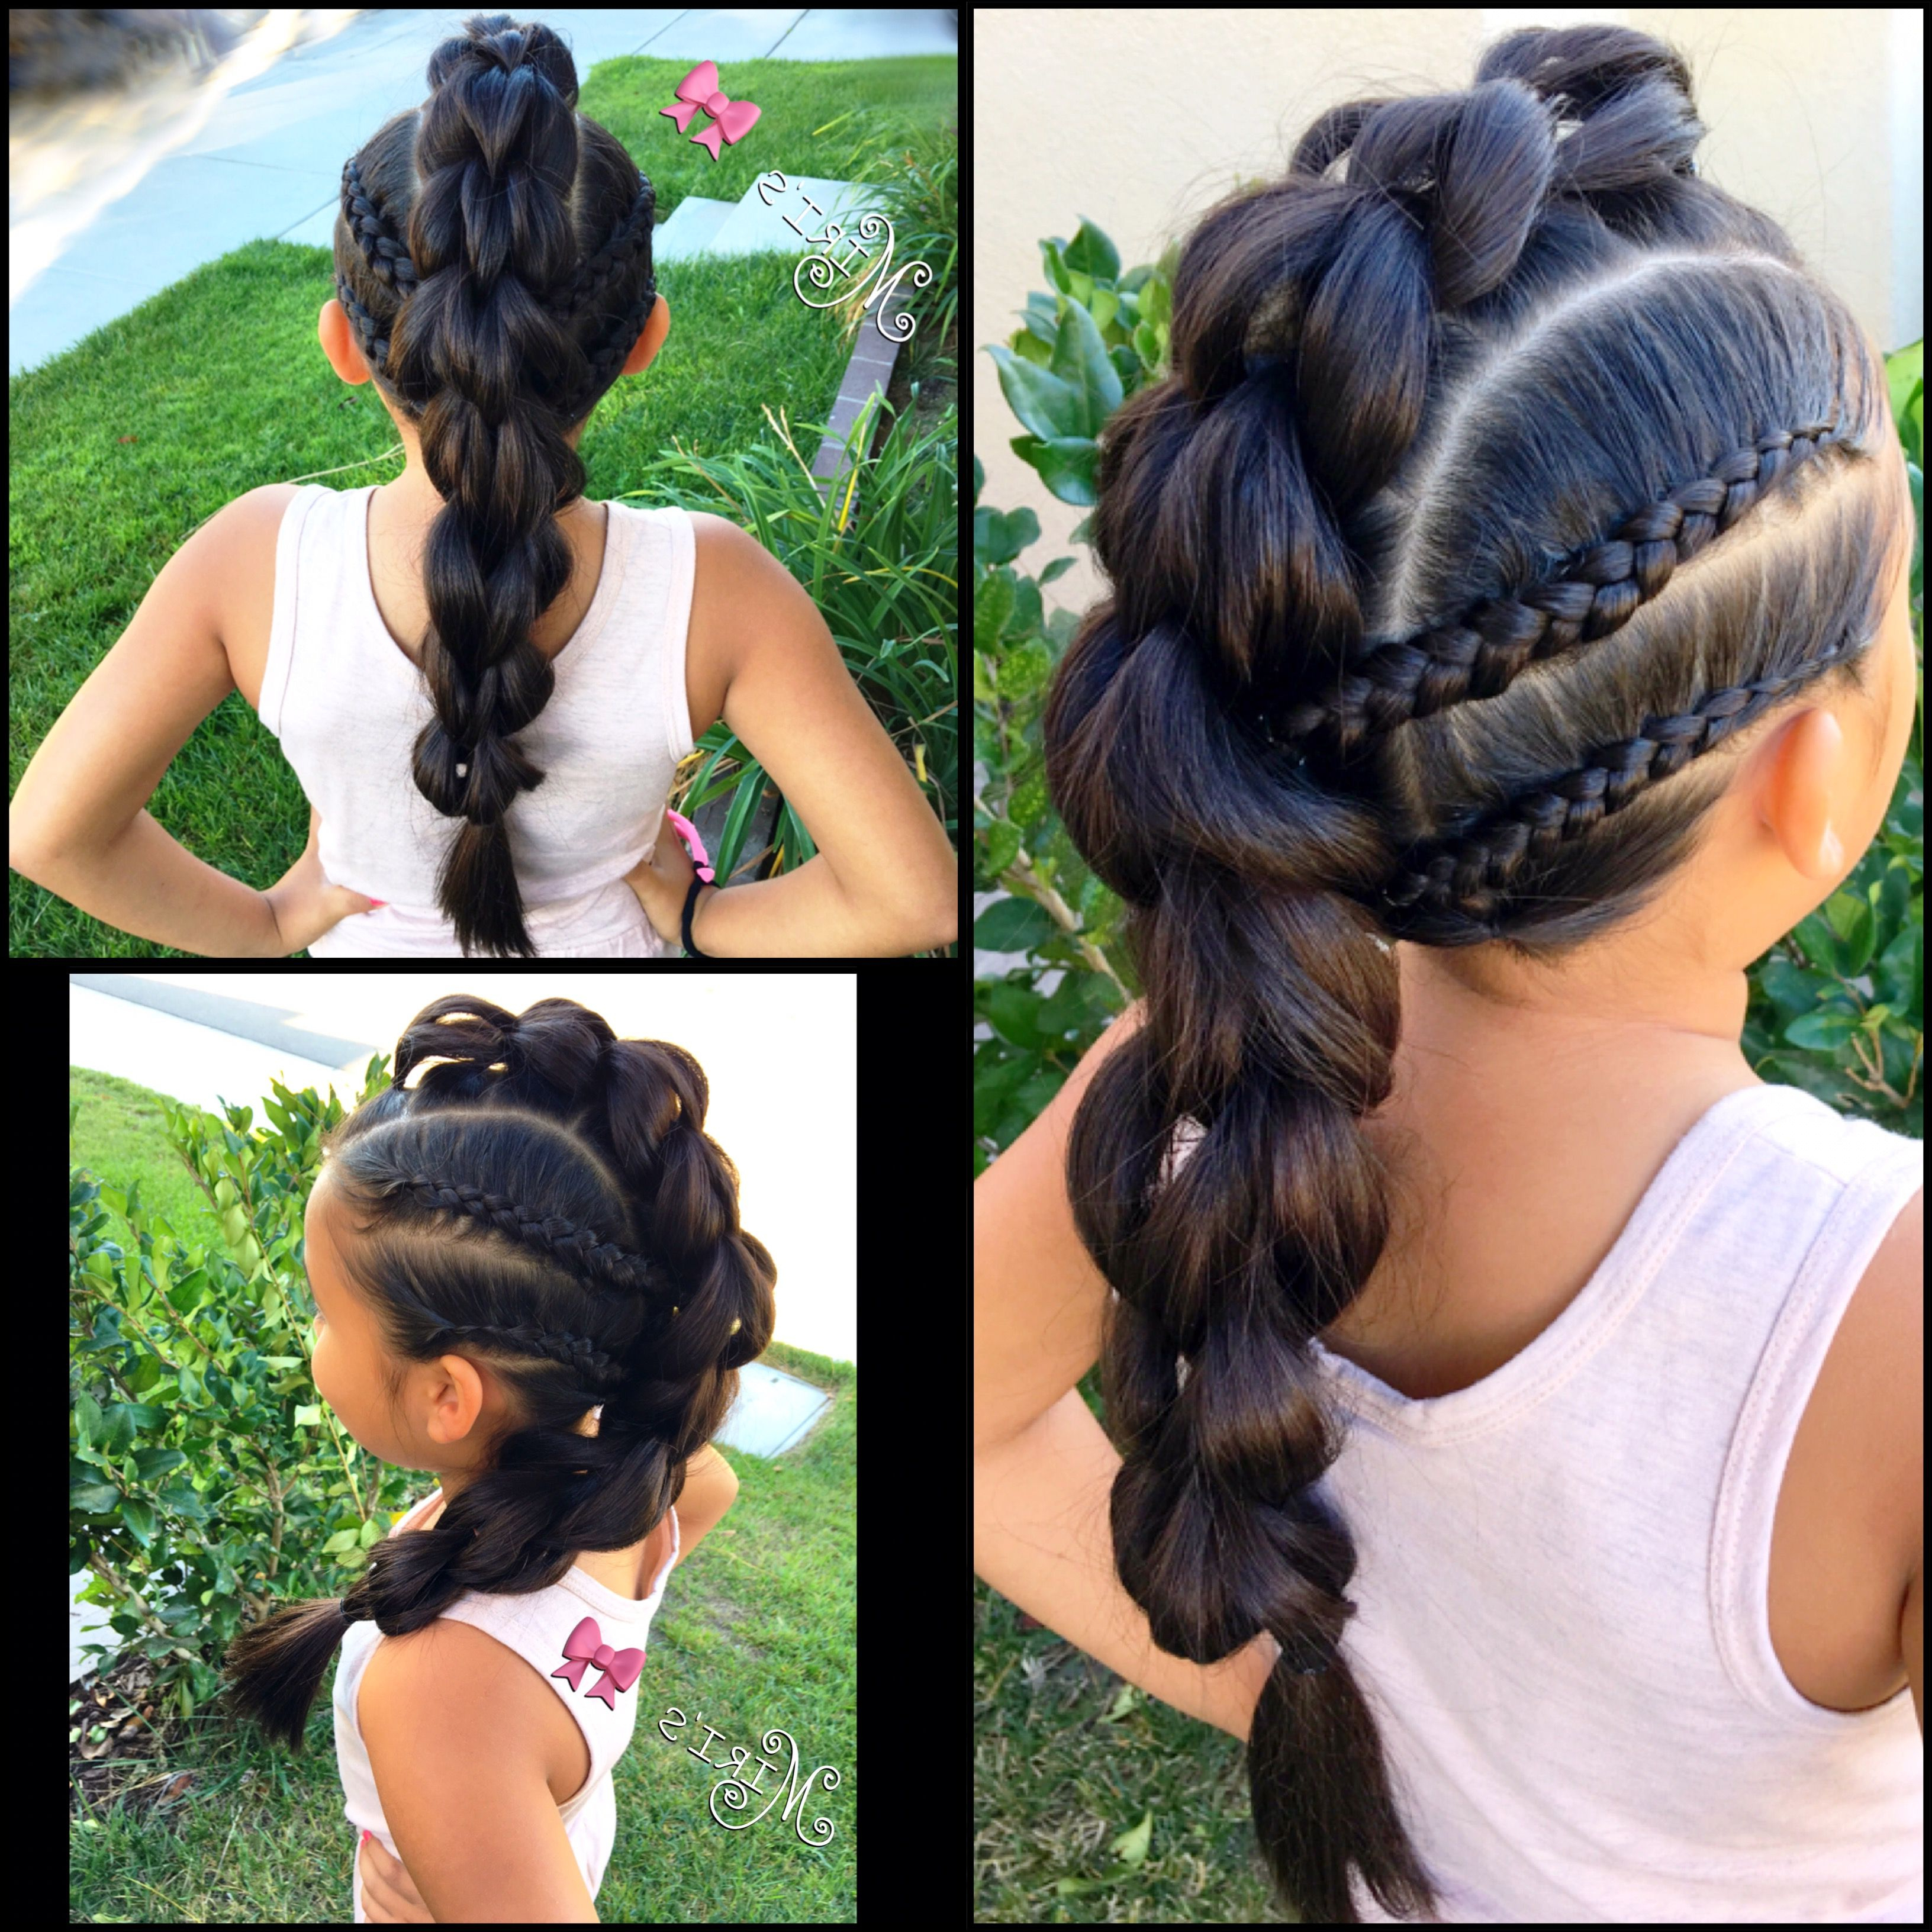 Hair Style For Little Girls (View 10 of 20)